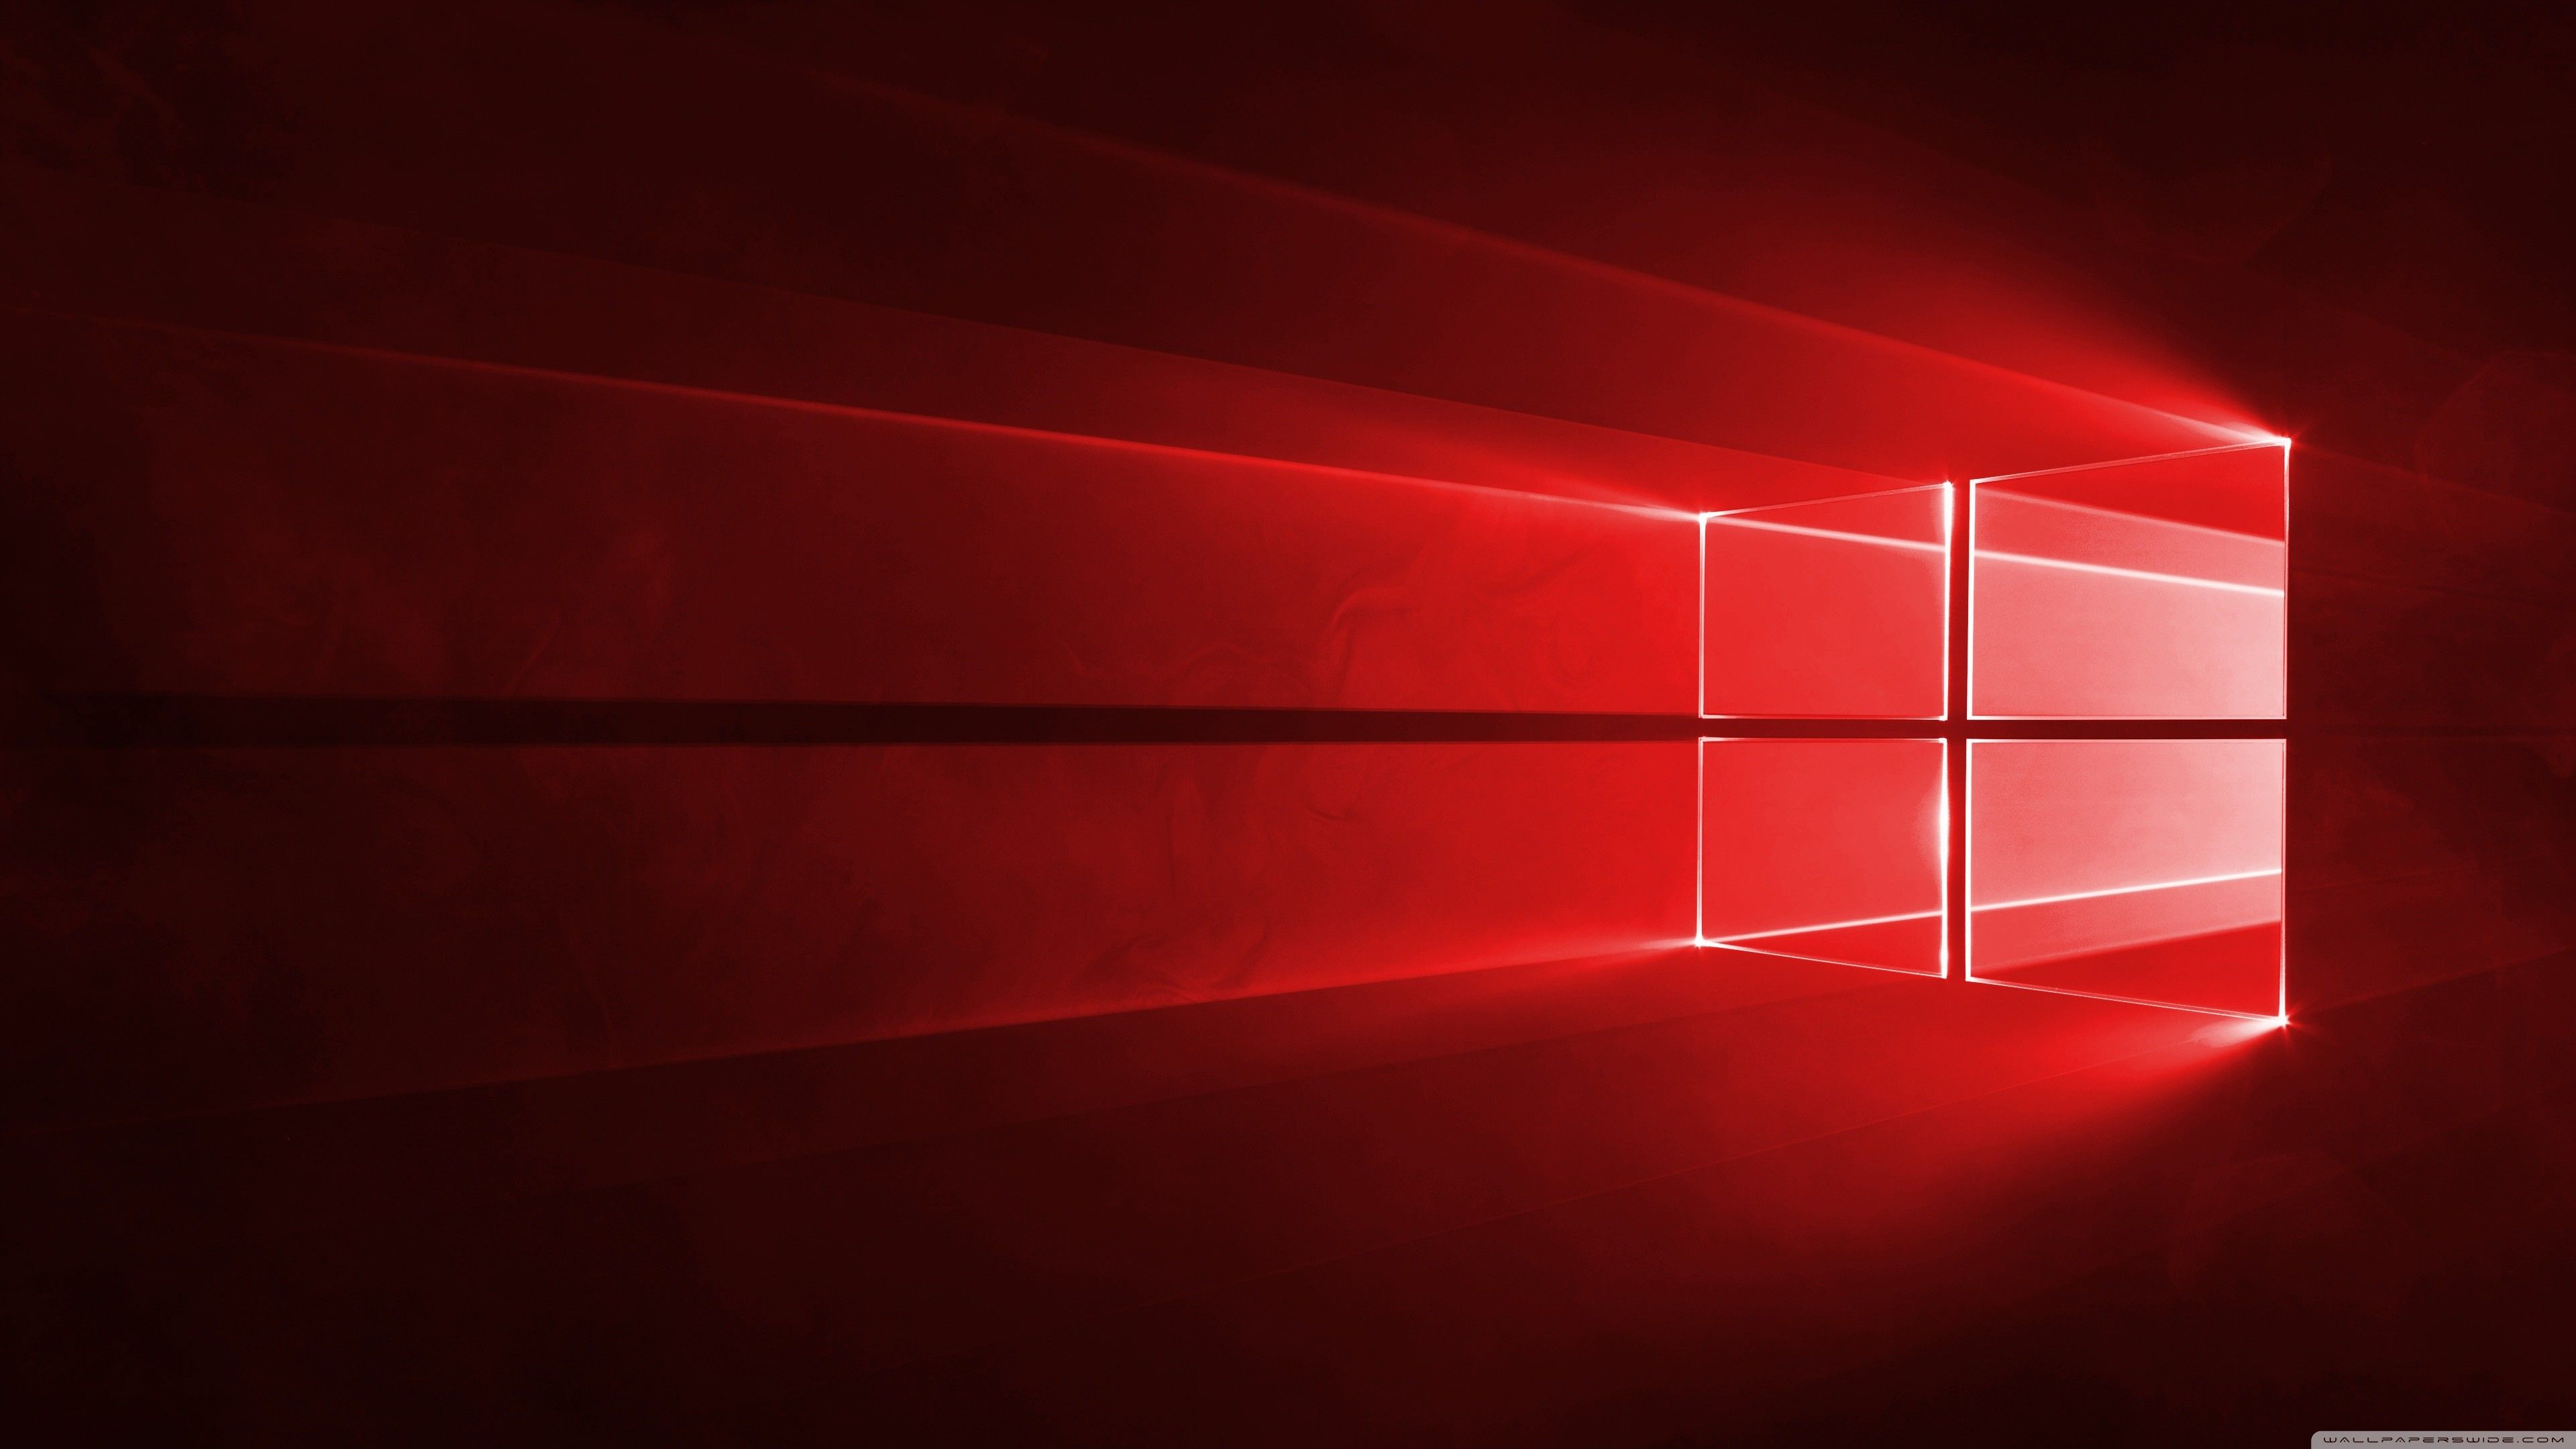 3840x2160 Windows 10 Red In 4k Hd Wide Wallpaper For Widescreen